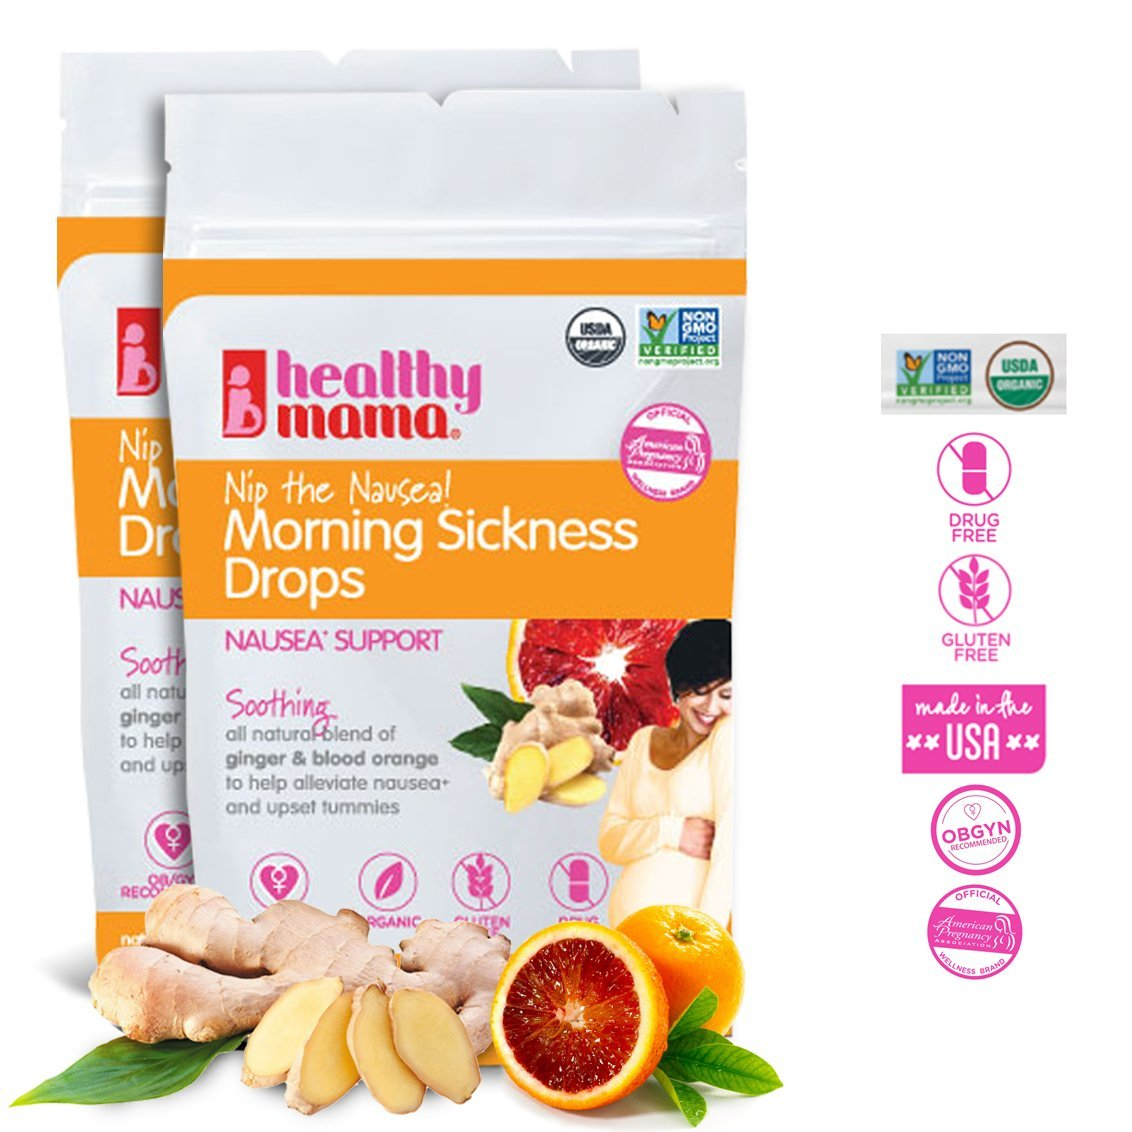 Healthy Mama Morning Sickness Relief Drops Nip the Nausea (2-Pack) Ginger Blood Orange Flavor. OB/GYN Recommended Relief from Morning Sickness, Nausea & Constipation by Healthy Mama